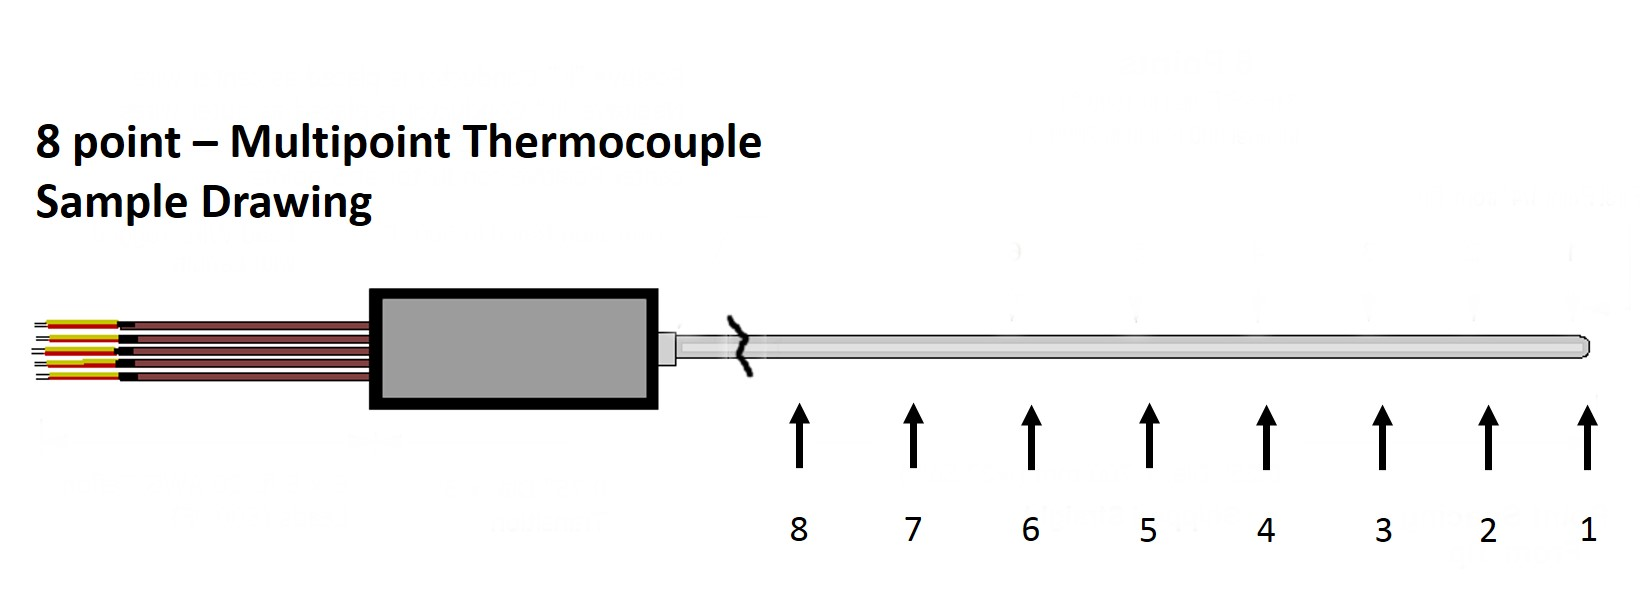 Multipoint Thermocouples